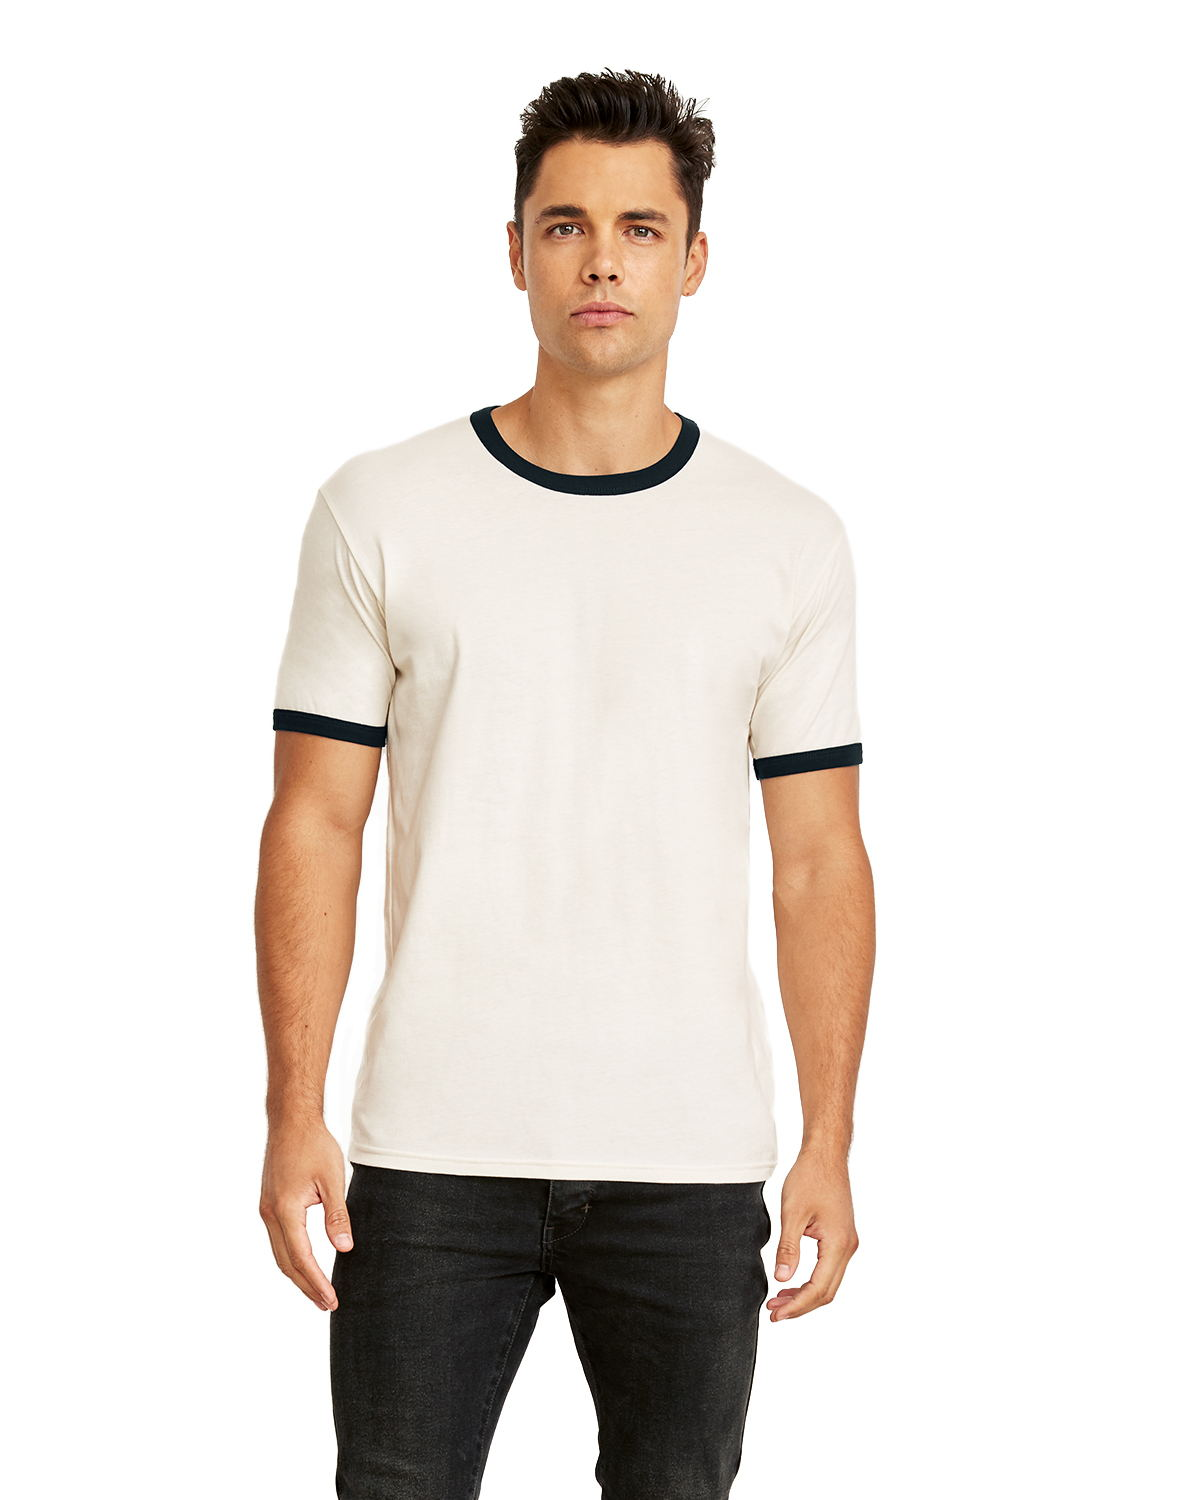 Next Level 3604 - Unisex Fine Jersey Ringer Tee